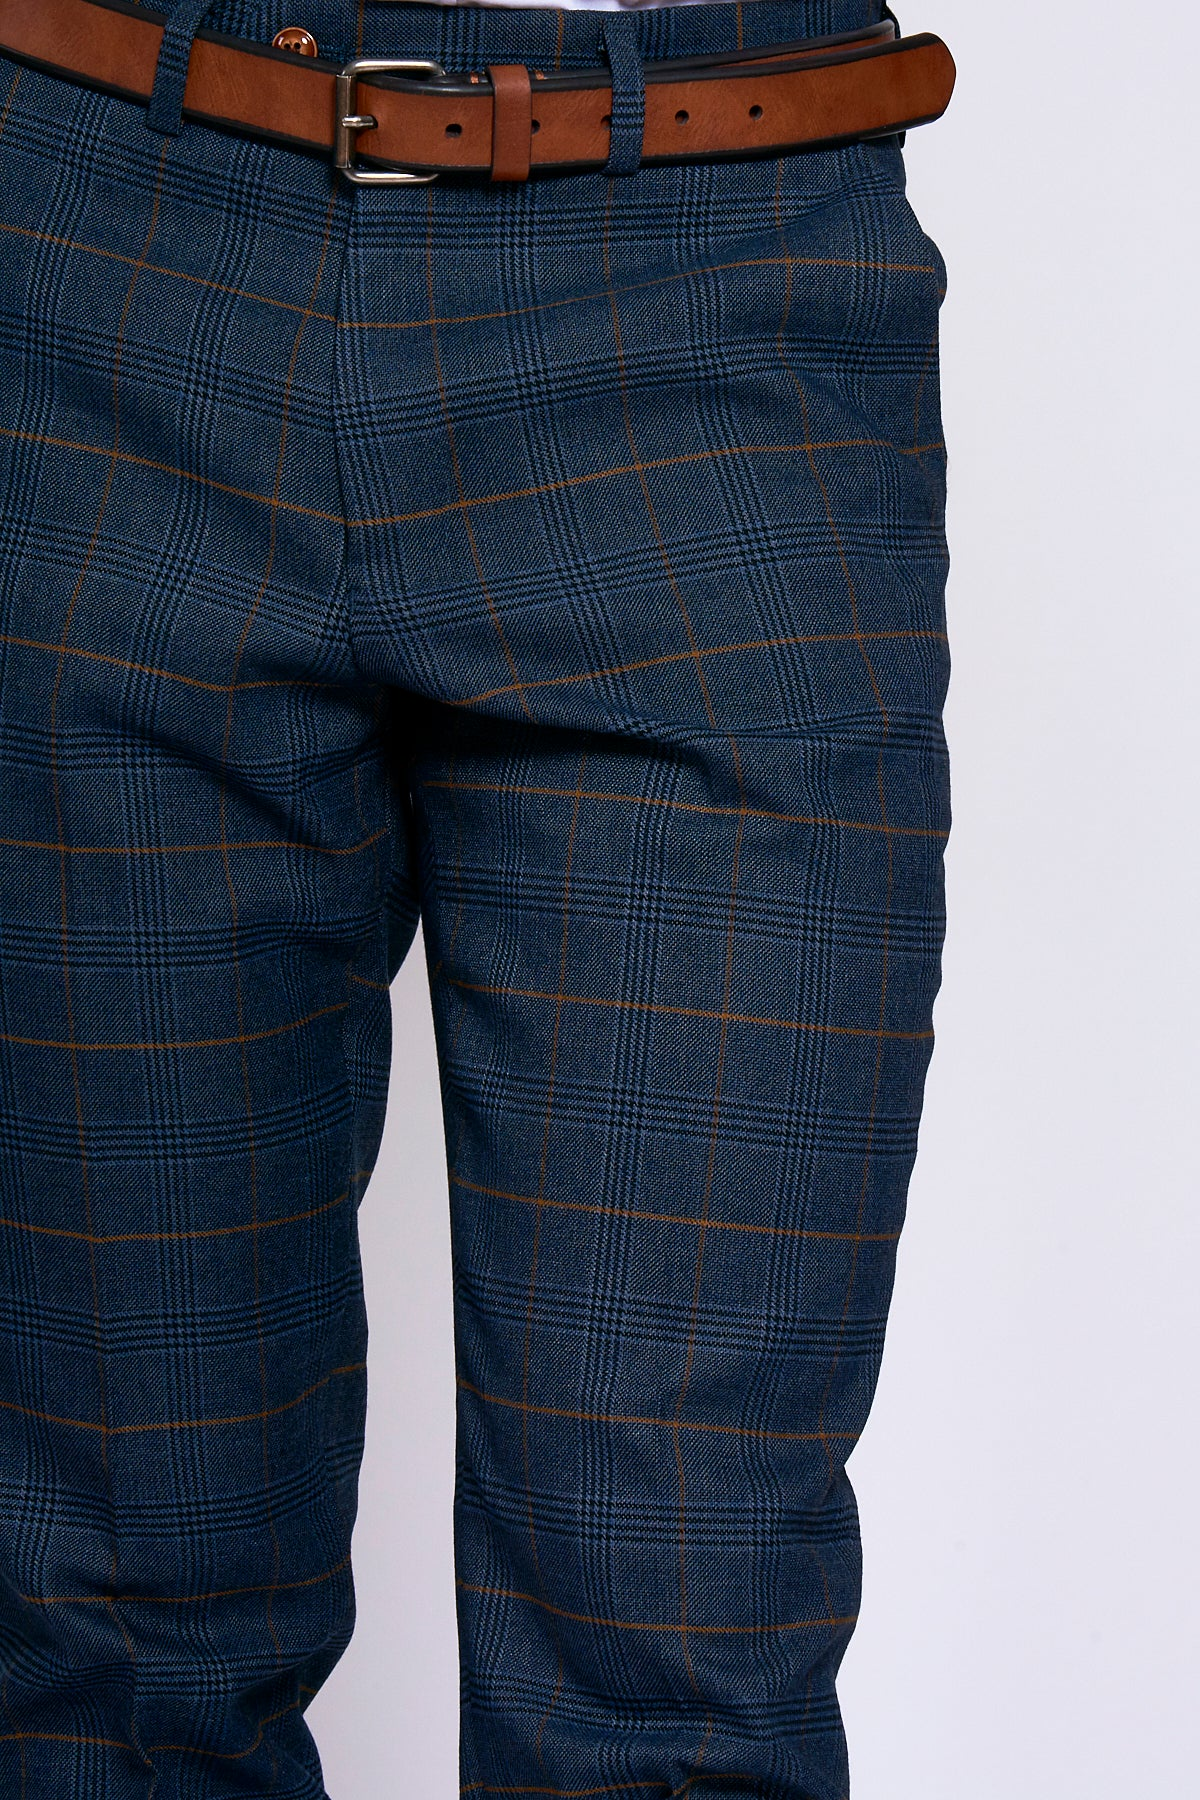 JENSON - Marine Navy Check Trousers-TROUSERS-marcdarcy-Marc Darcy